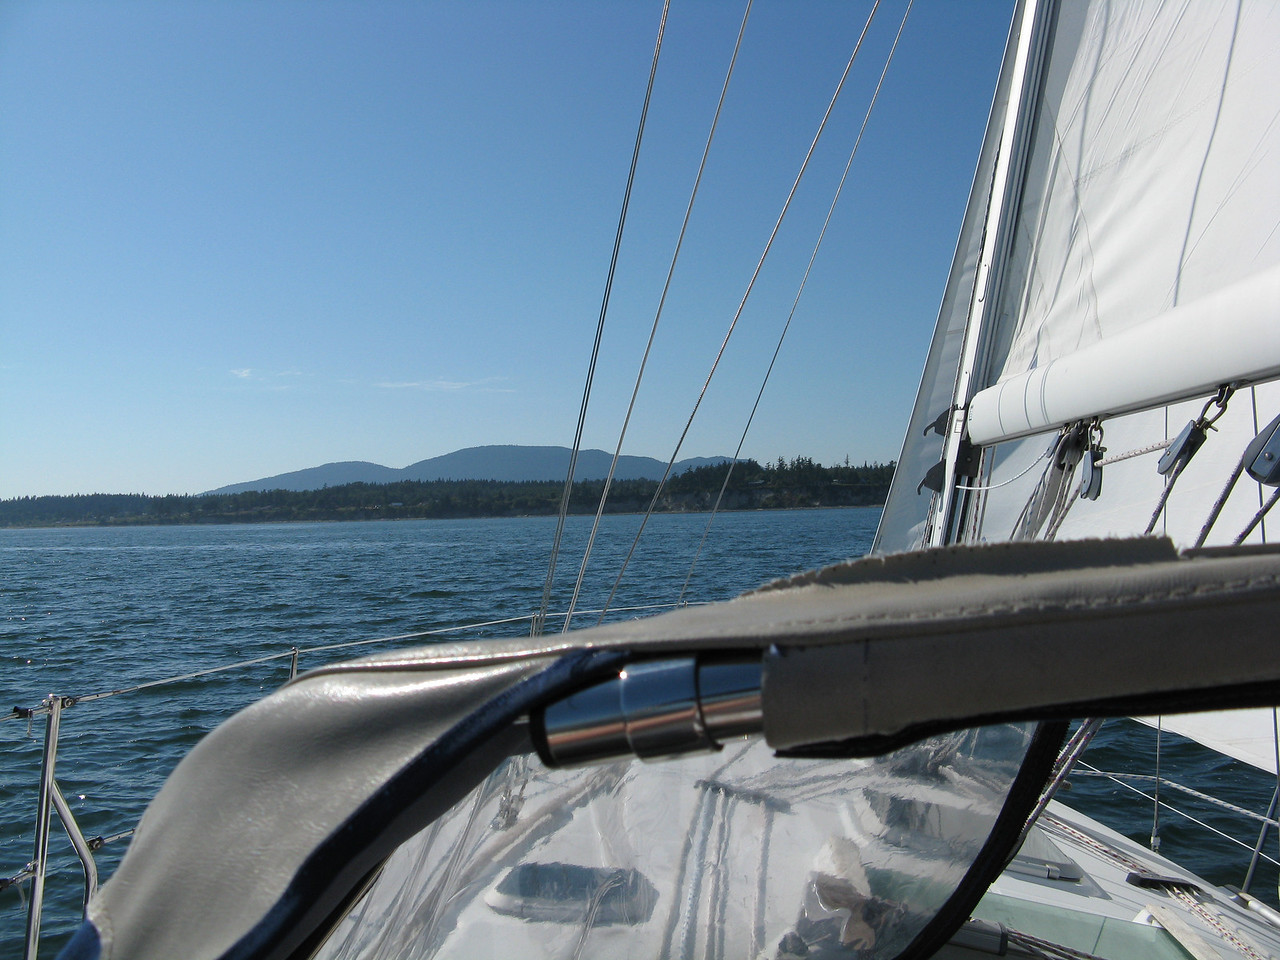 After being checked out by the charter company, Keegan, Ann, Nathan and Martin went sailing on Fidalgo Bay, east of Anacortes.  Glenn, Sonia and Abby arrived after dark.  This photo shows the boat beating into the wind on a port tack on a beautiful afternoon on Fidalgo Bay.